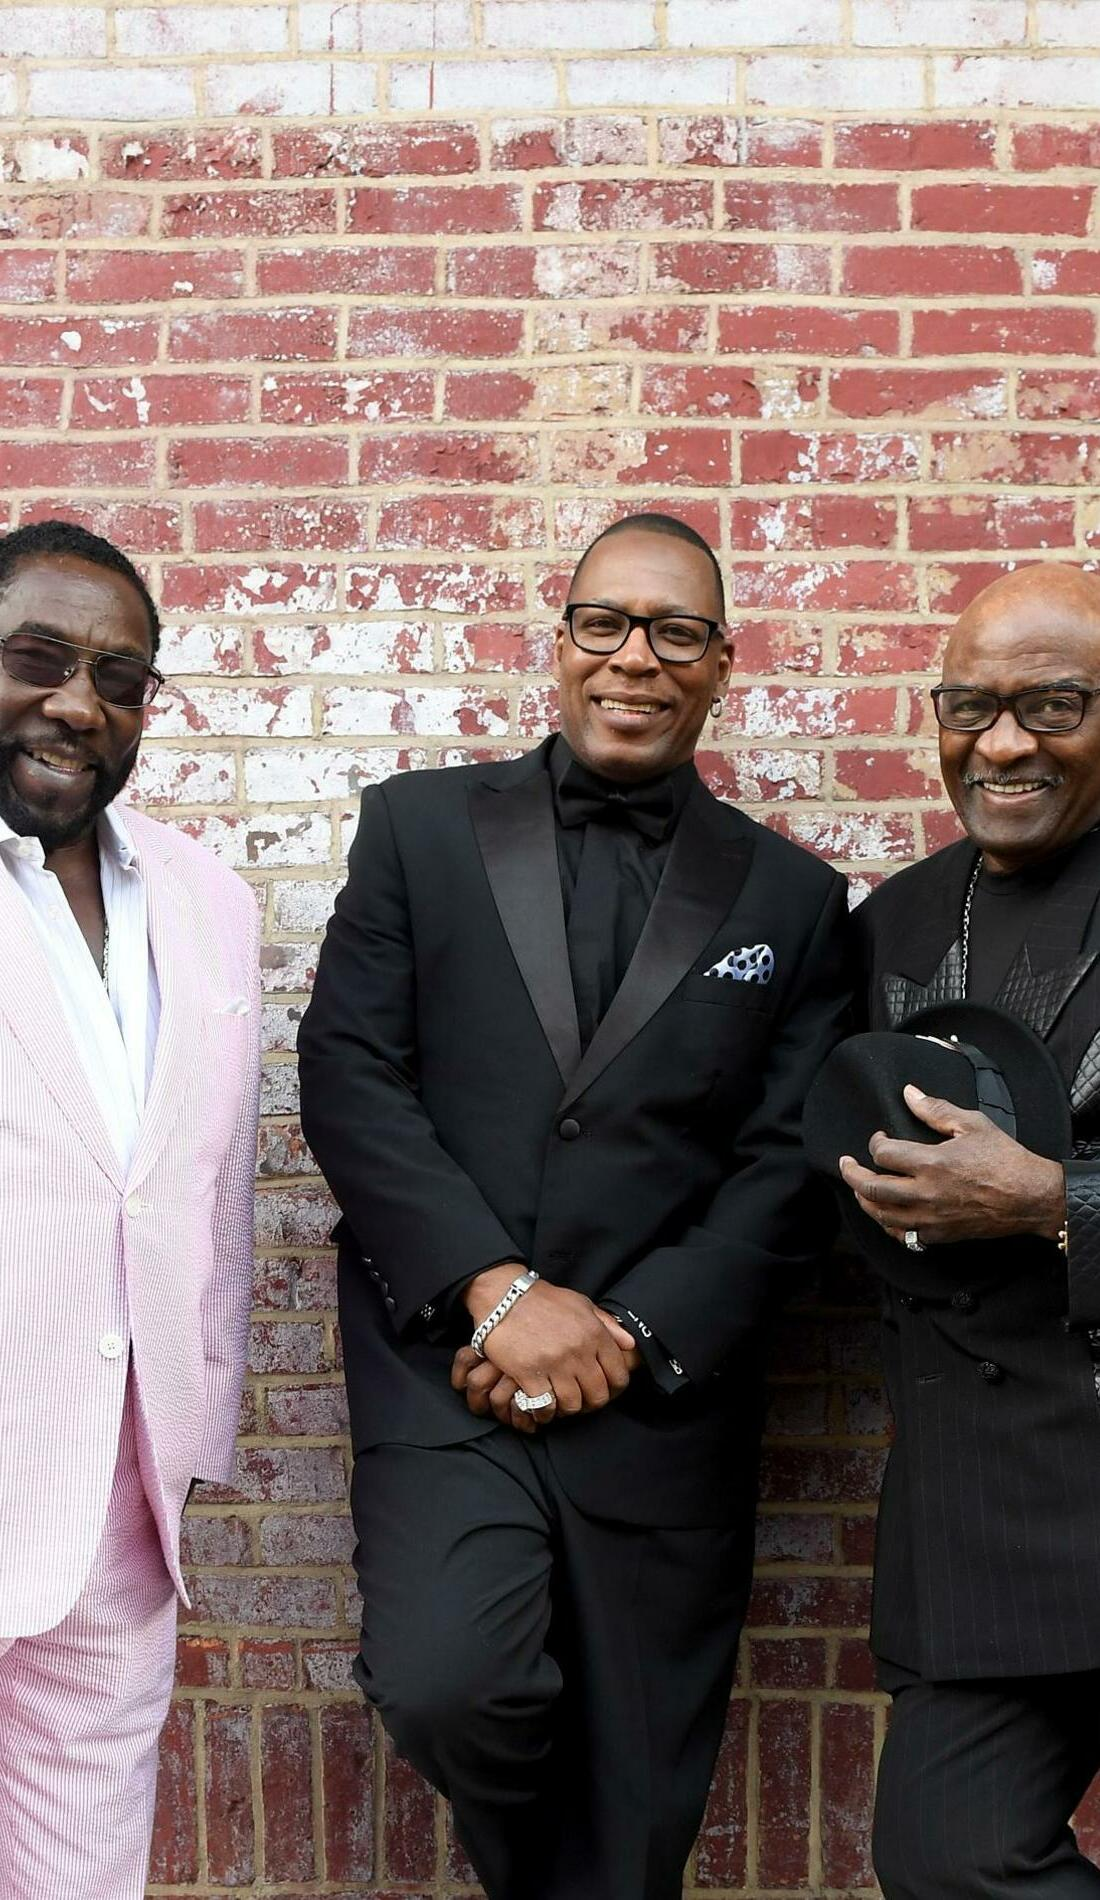 A The O'Jays live event